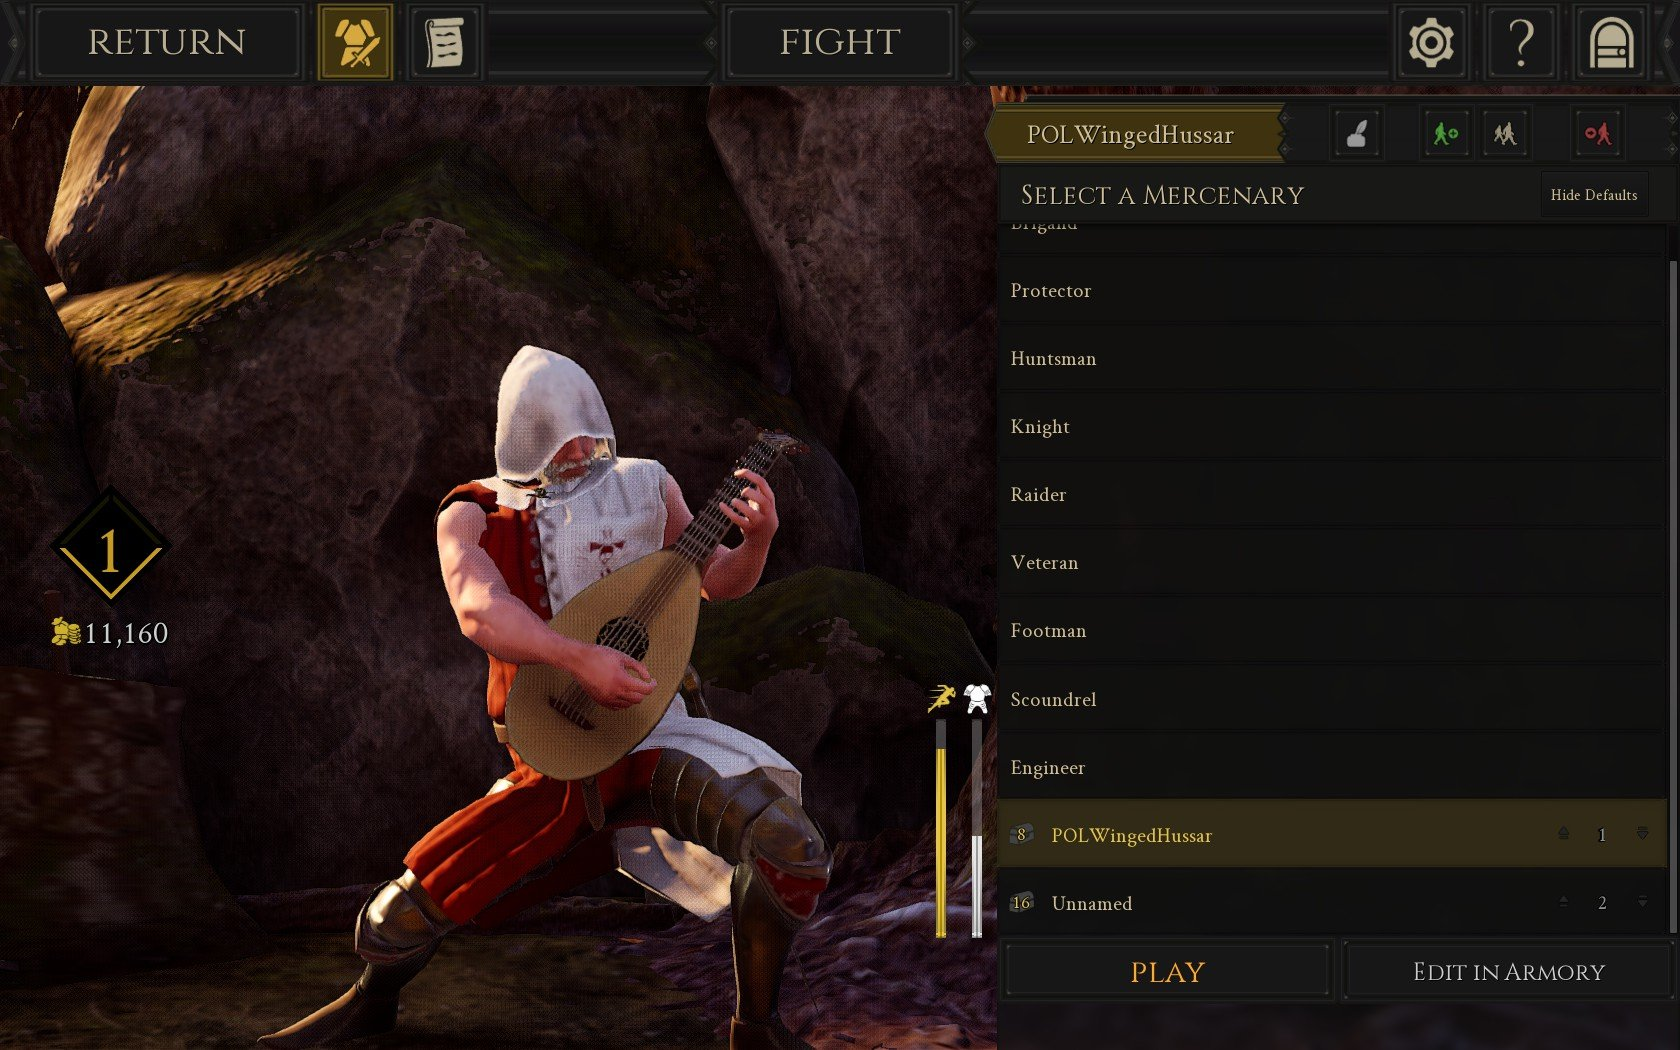 Customization screen - How to use the Lute in mordhau